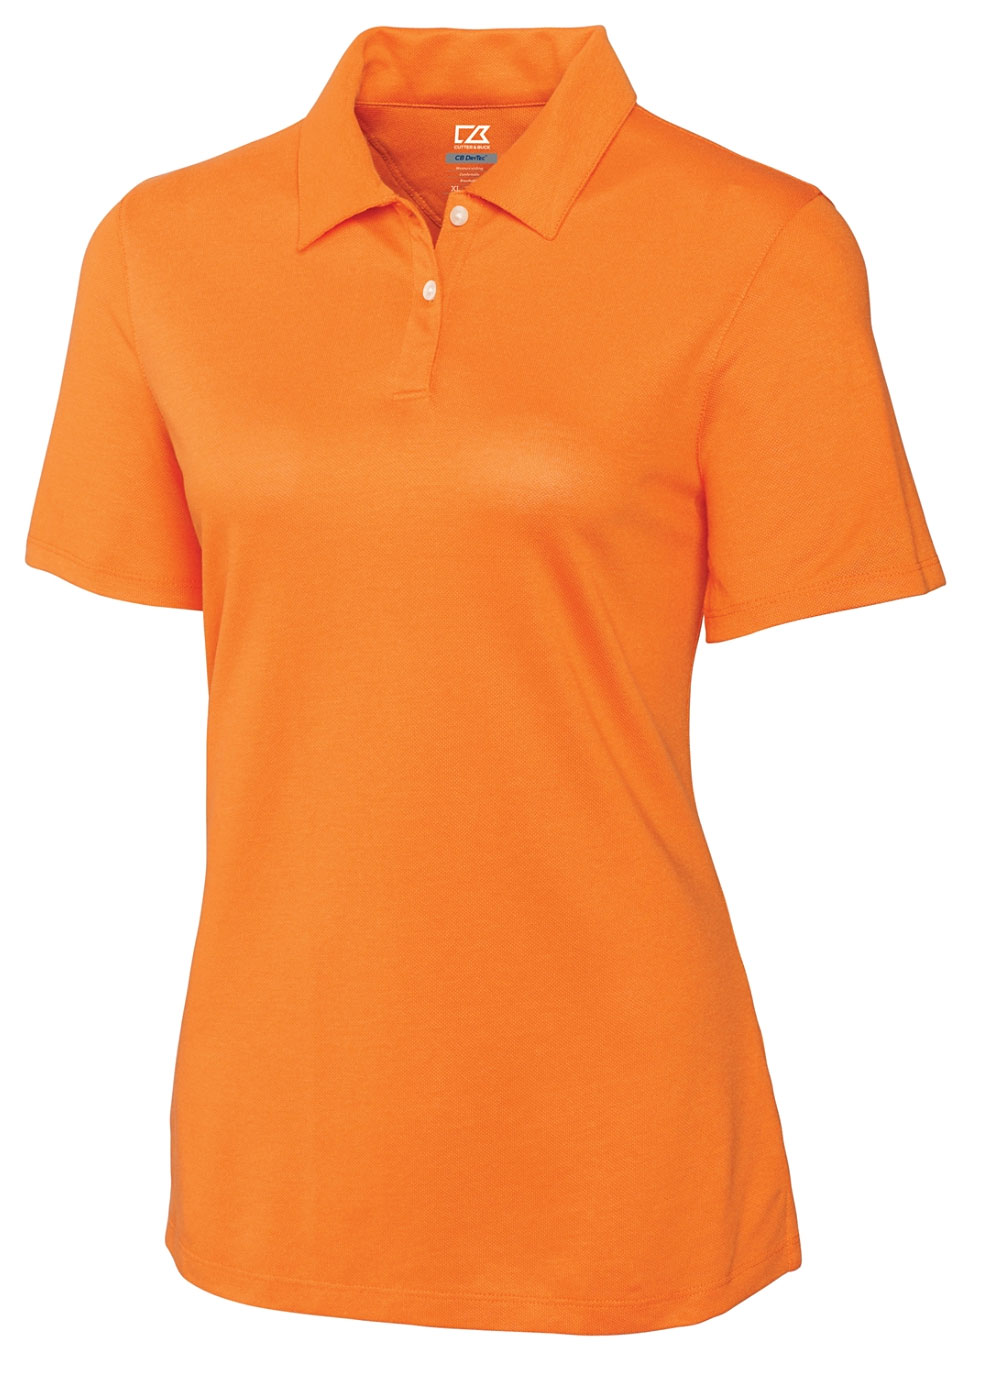 Womens CB Drytec™ Elliott Bay Polo